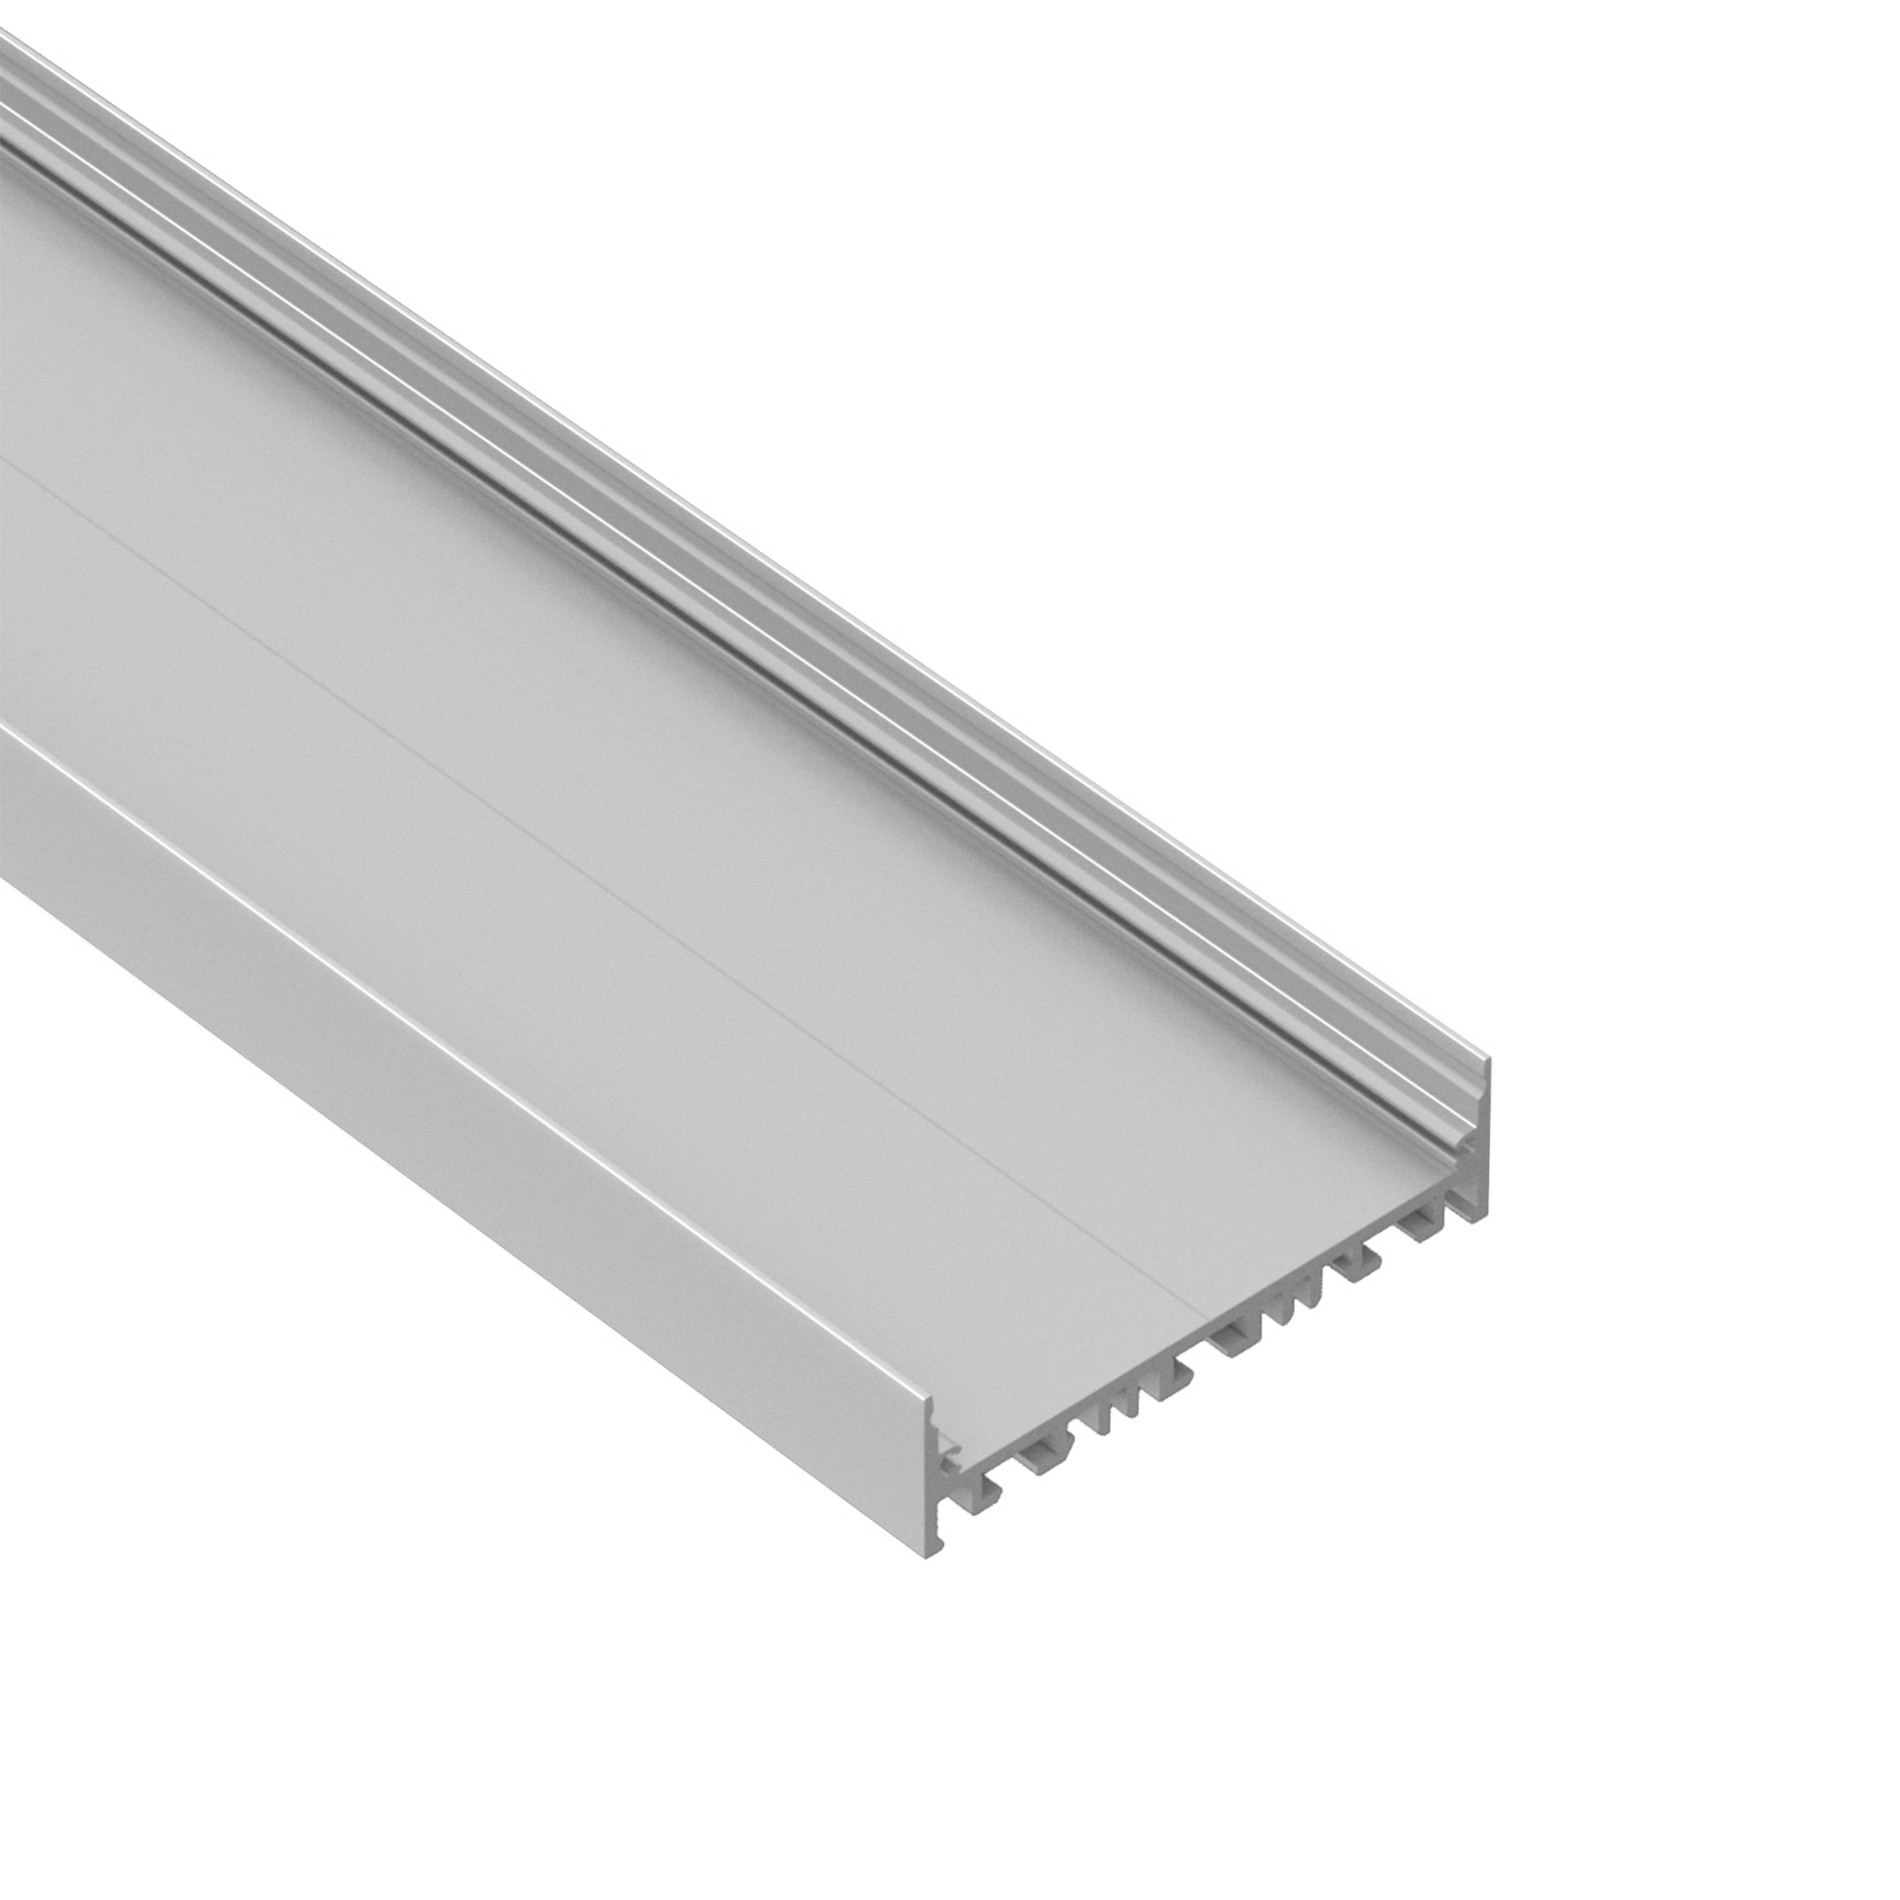 E80-22 Slim but wide surface led profile extrusion 80x22mm Manufacturers, E80-22 Slim but wide surface led profile extrusion 80x22mm Factory, Supply E80-22 Slim but wide surface led profile extrusion 80x22mm